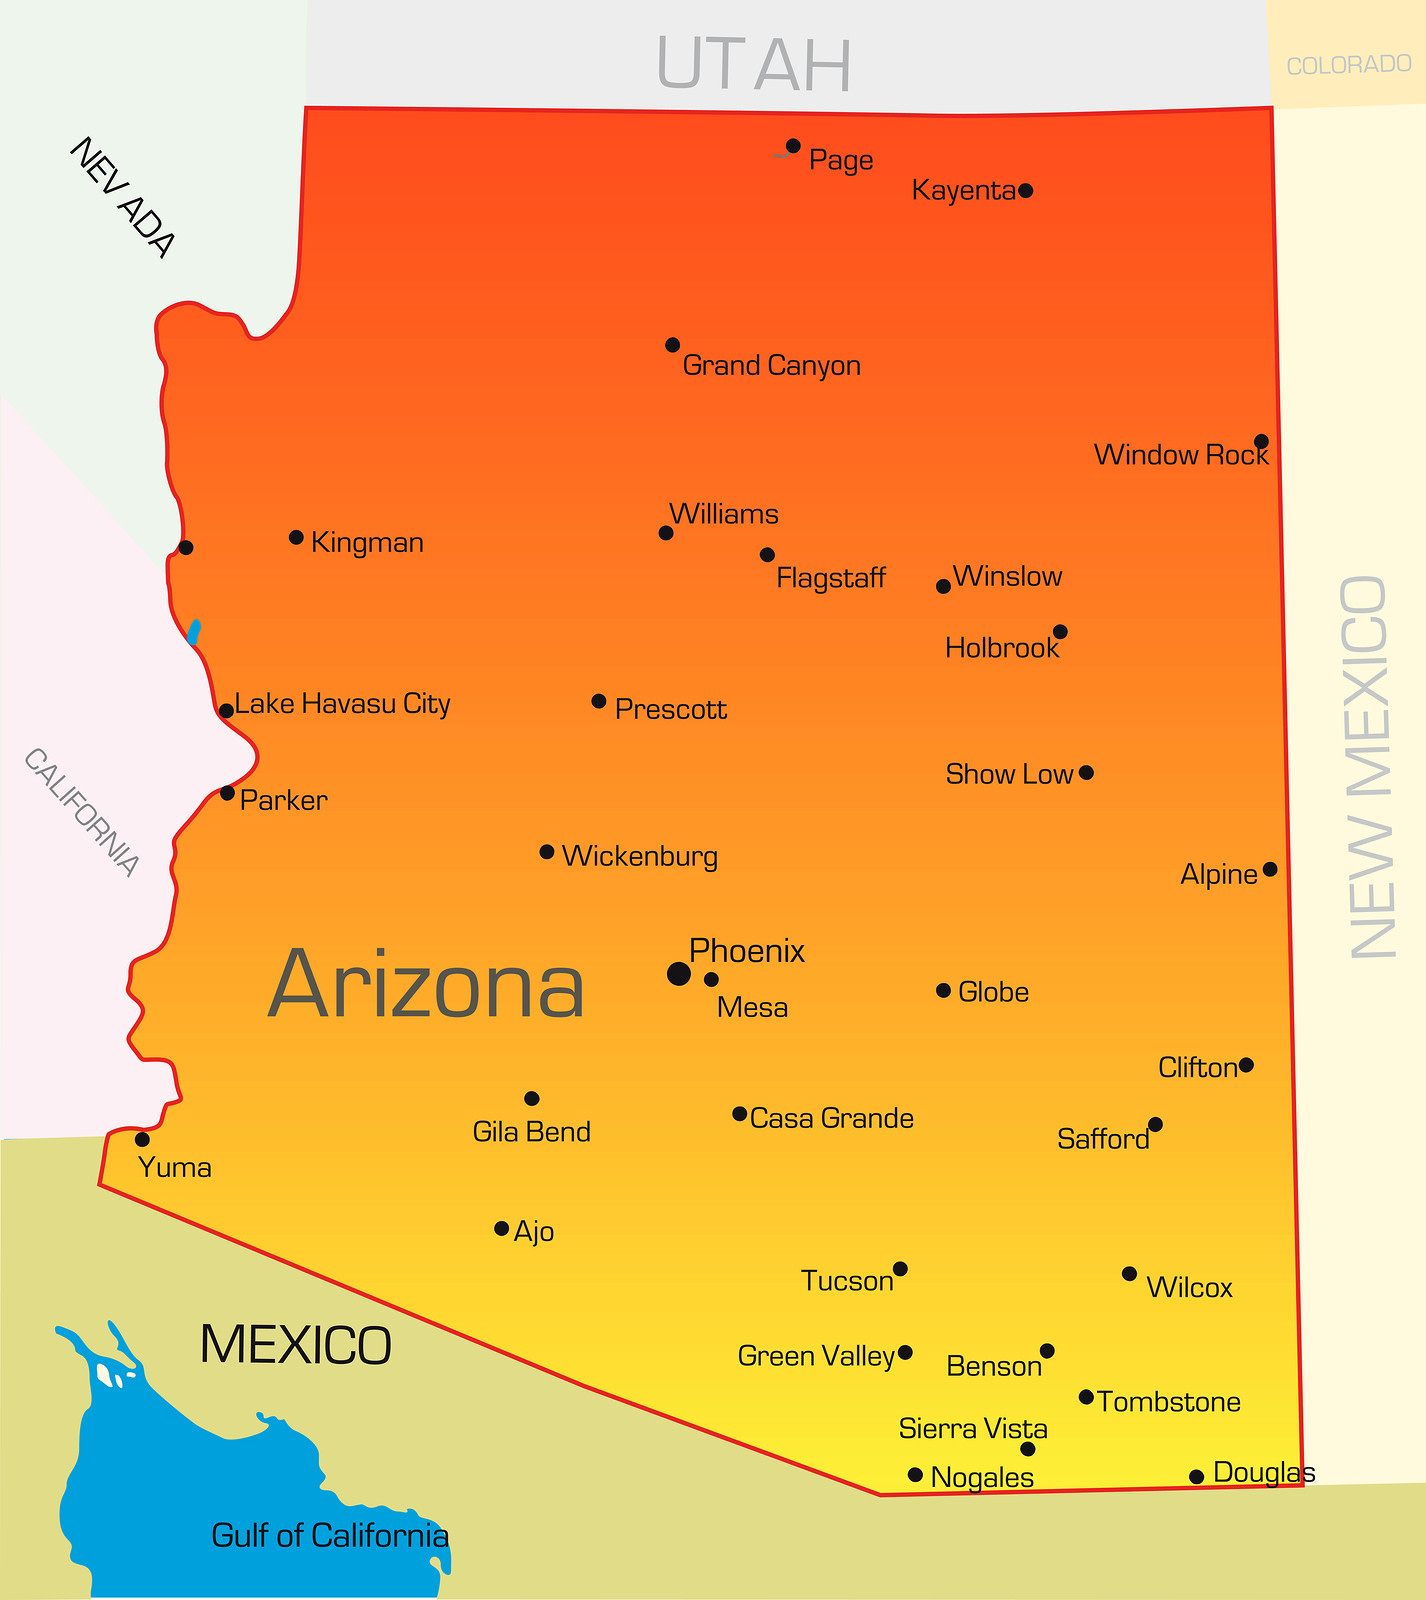 Arizona RN Requirements and Training Programs